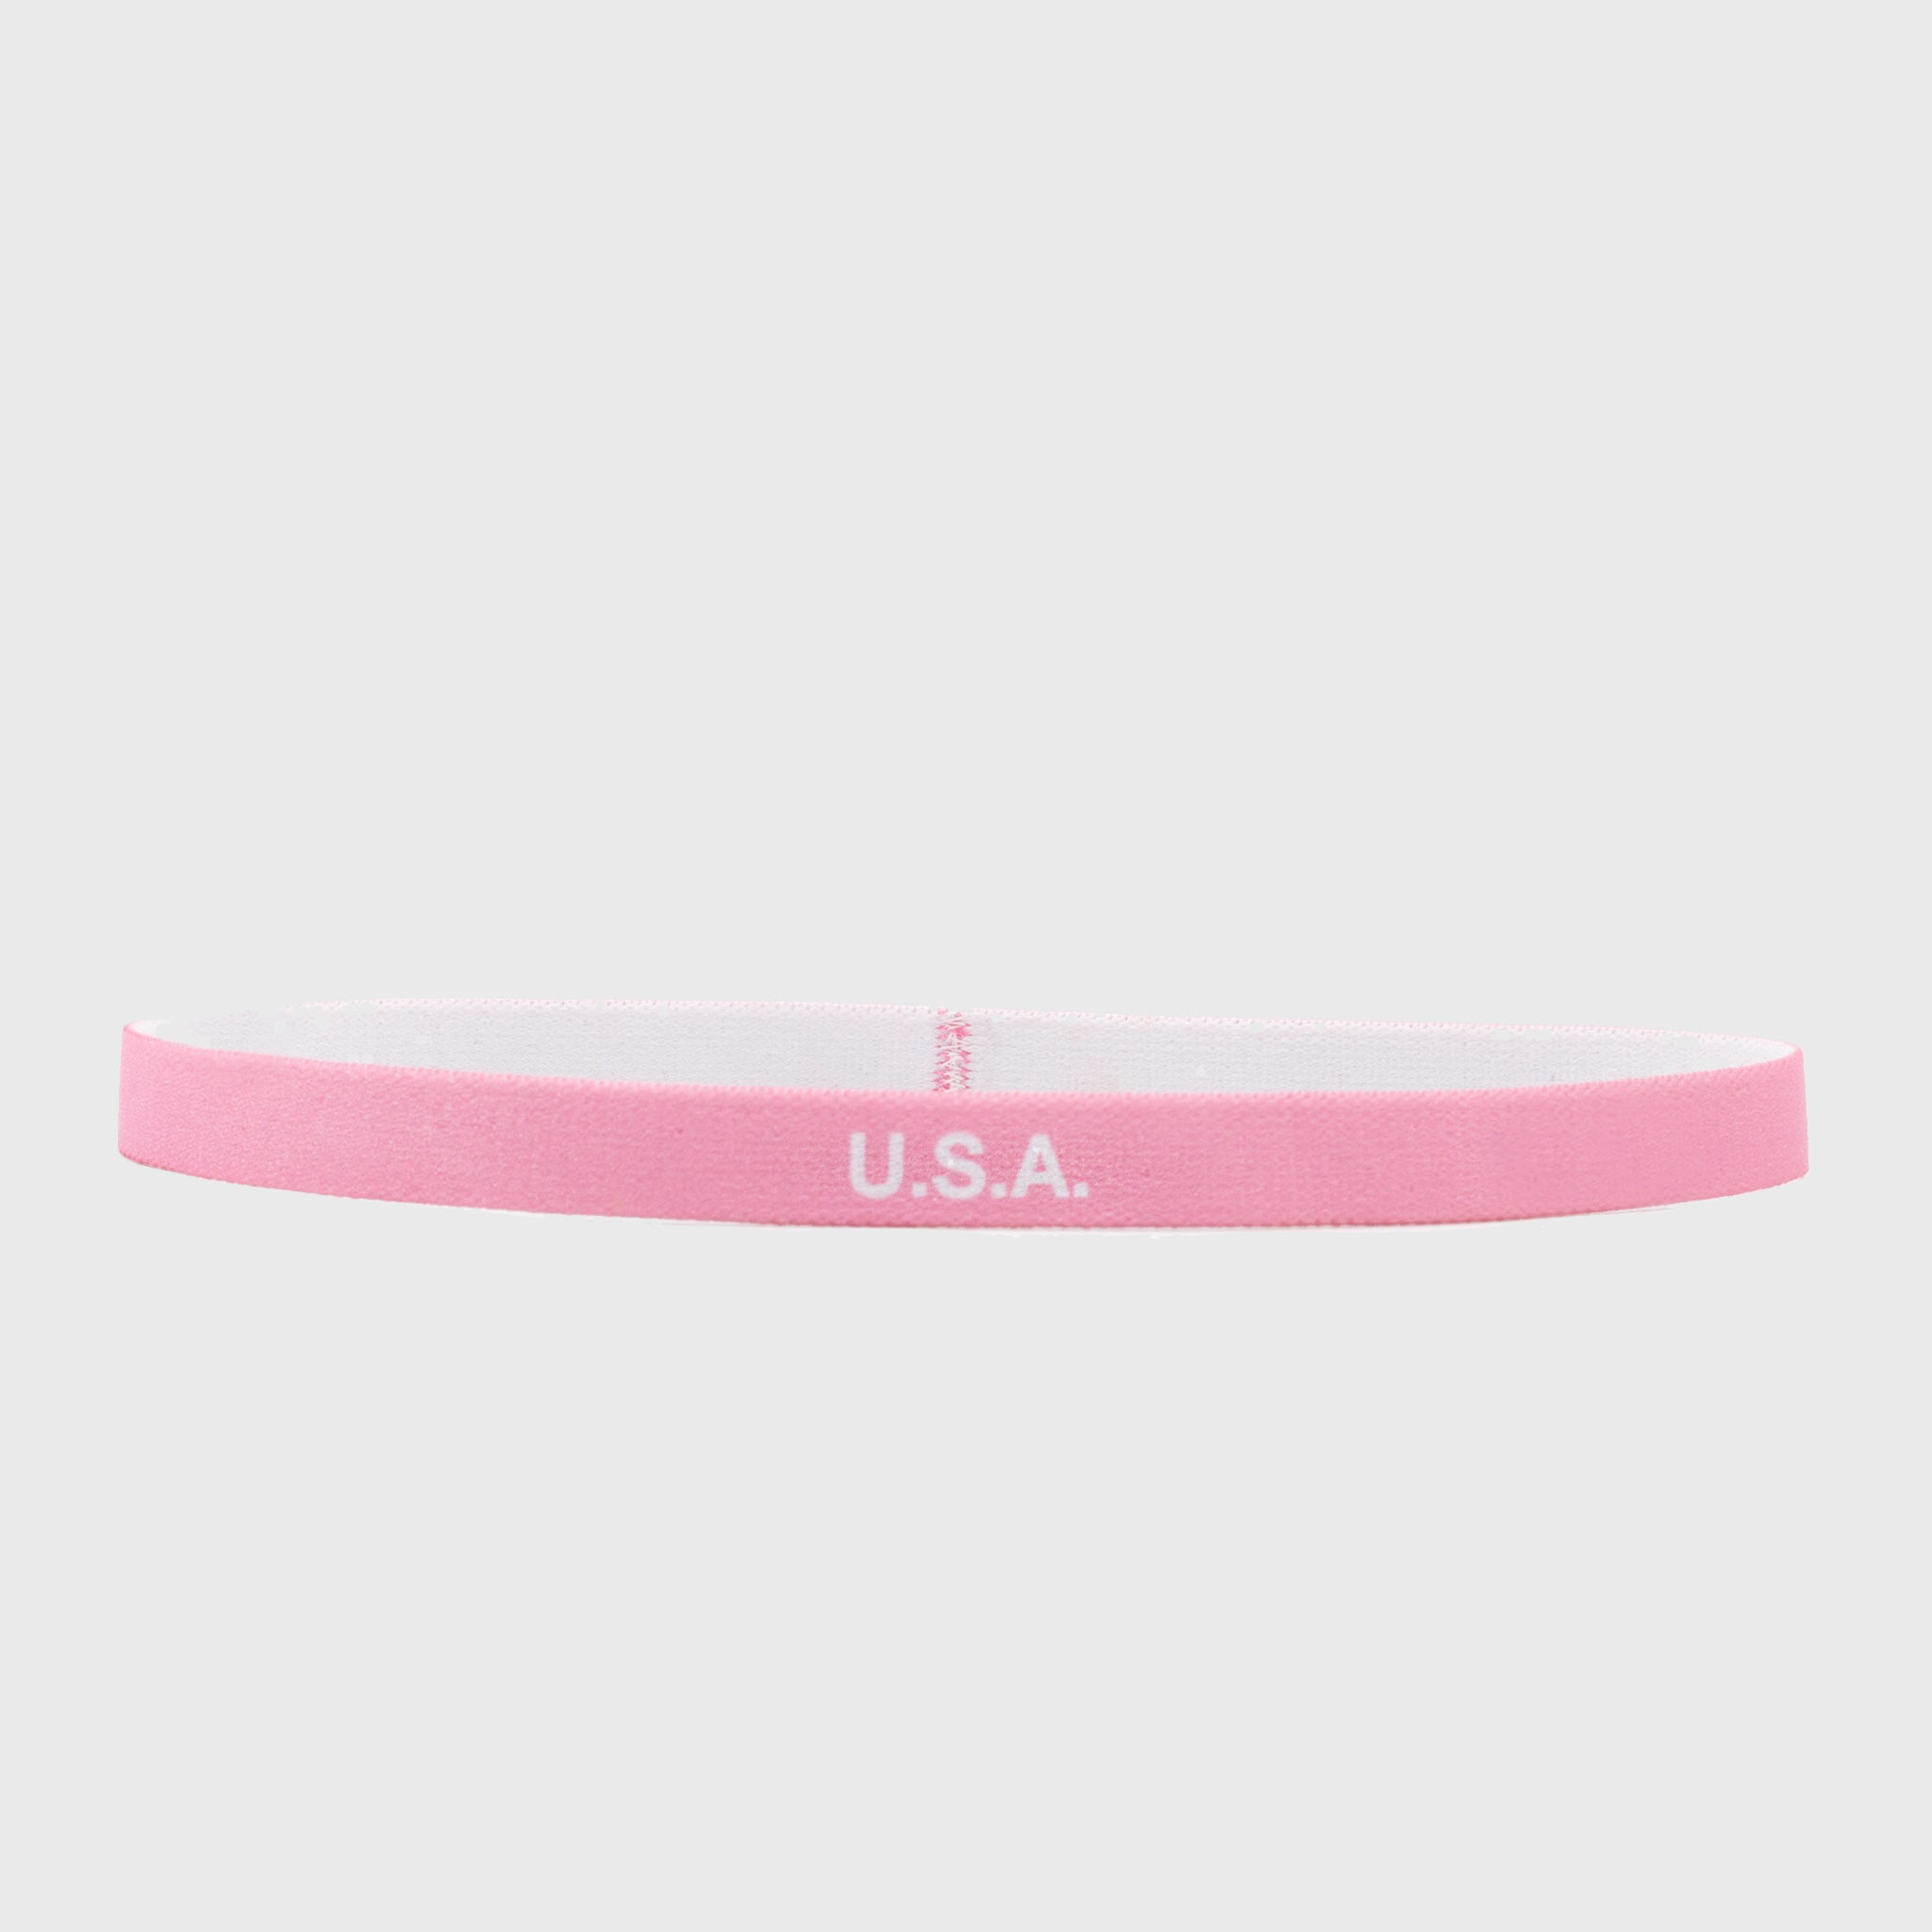 uswnt us usa united states women's national team soccer champion collectible exclusive box pink headband culturefly